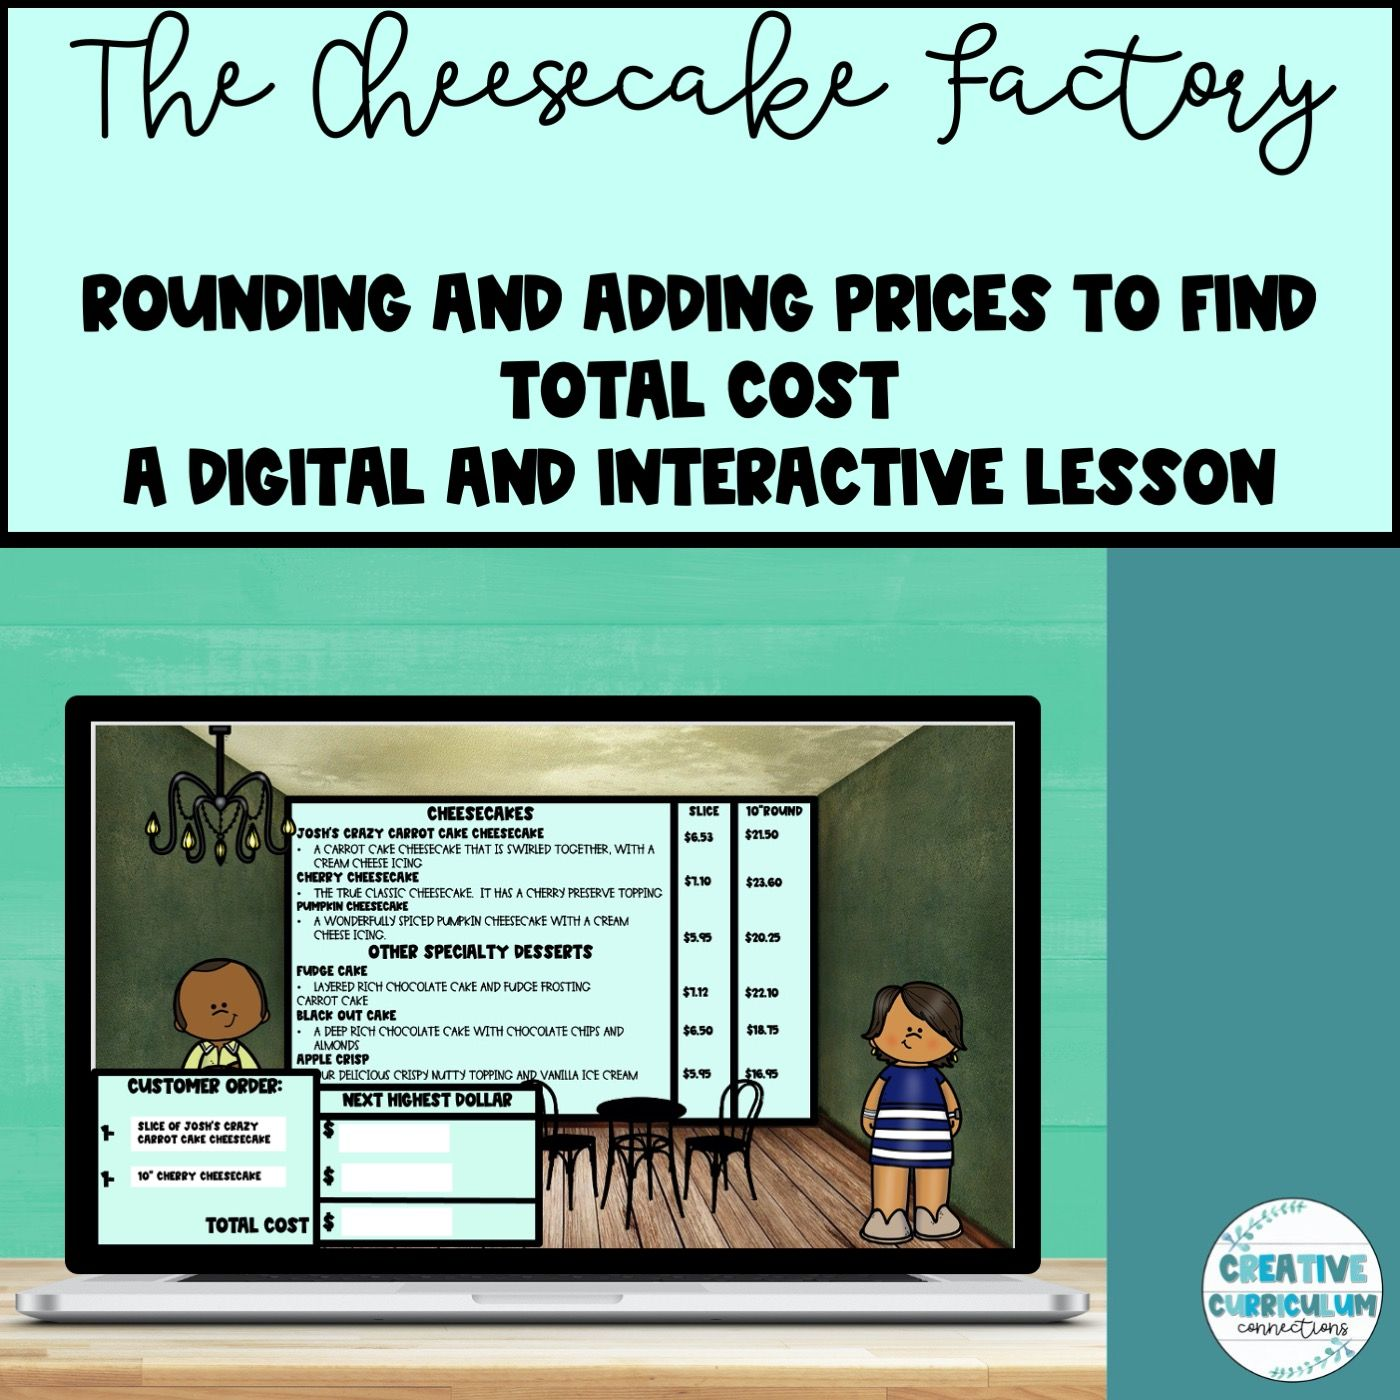 Cheesecake Factory Rounding And Adding Two Prices For Total Cost Digital Lesson Digital Lessons Interactive Lessons Lesson How to price addition